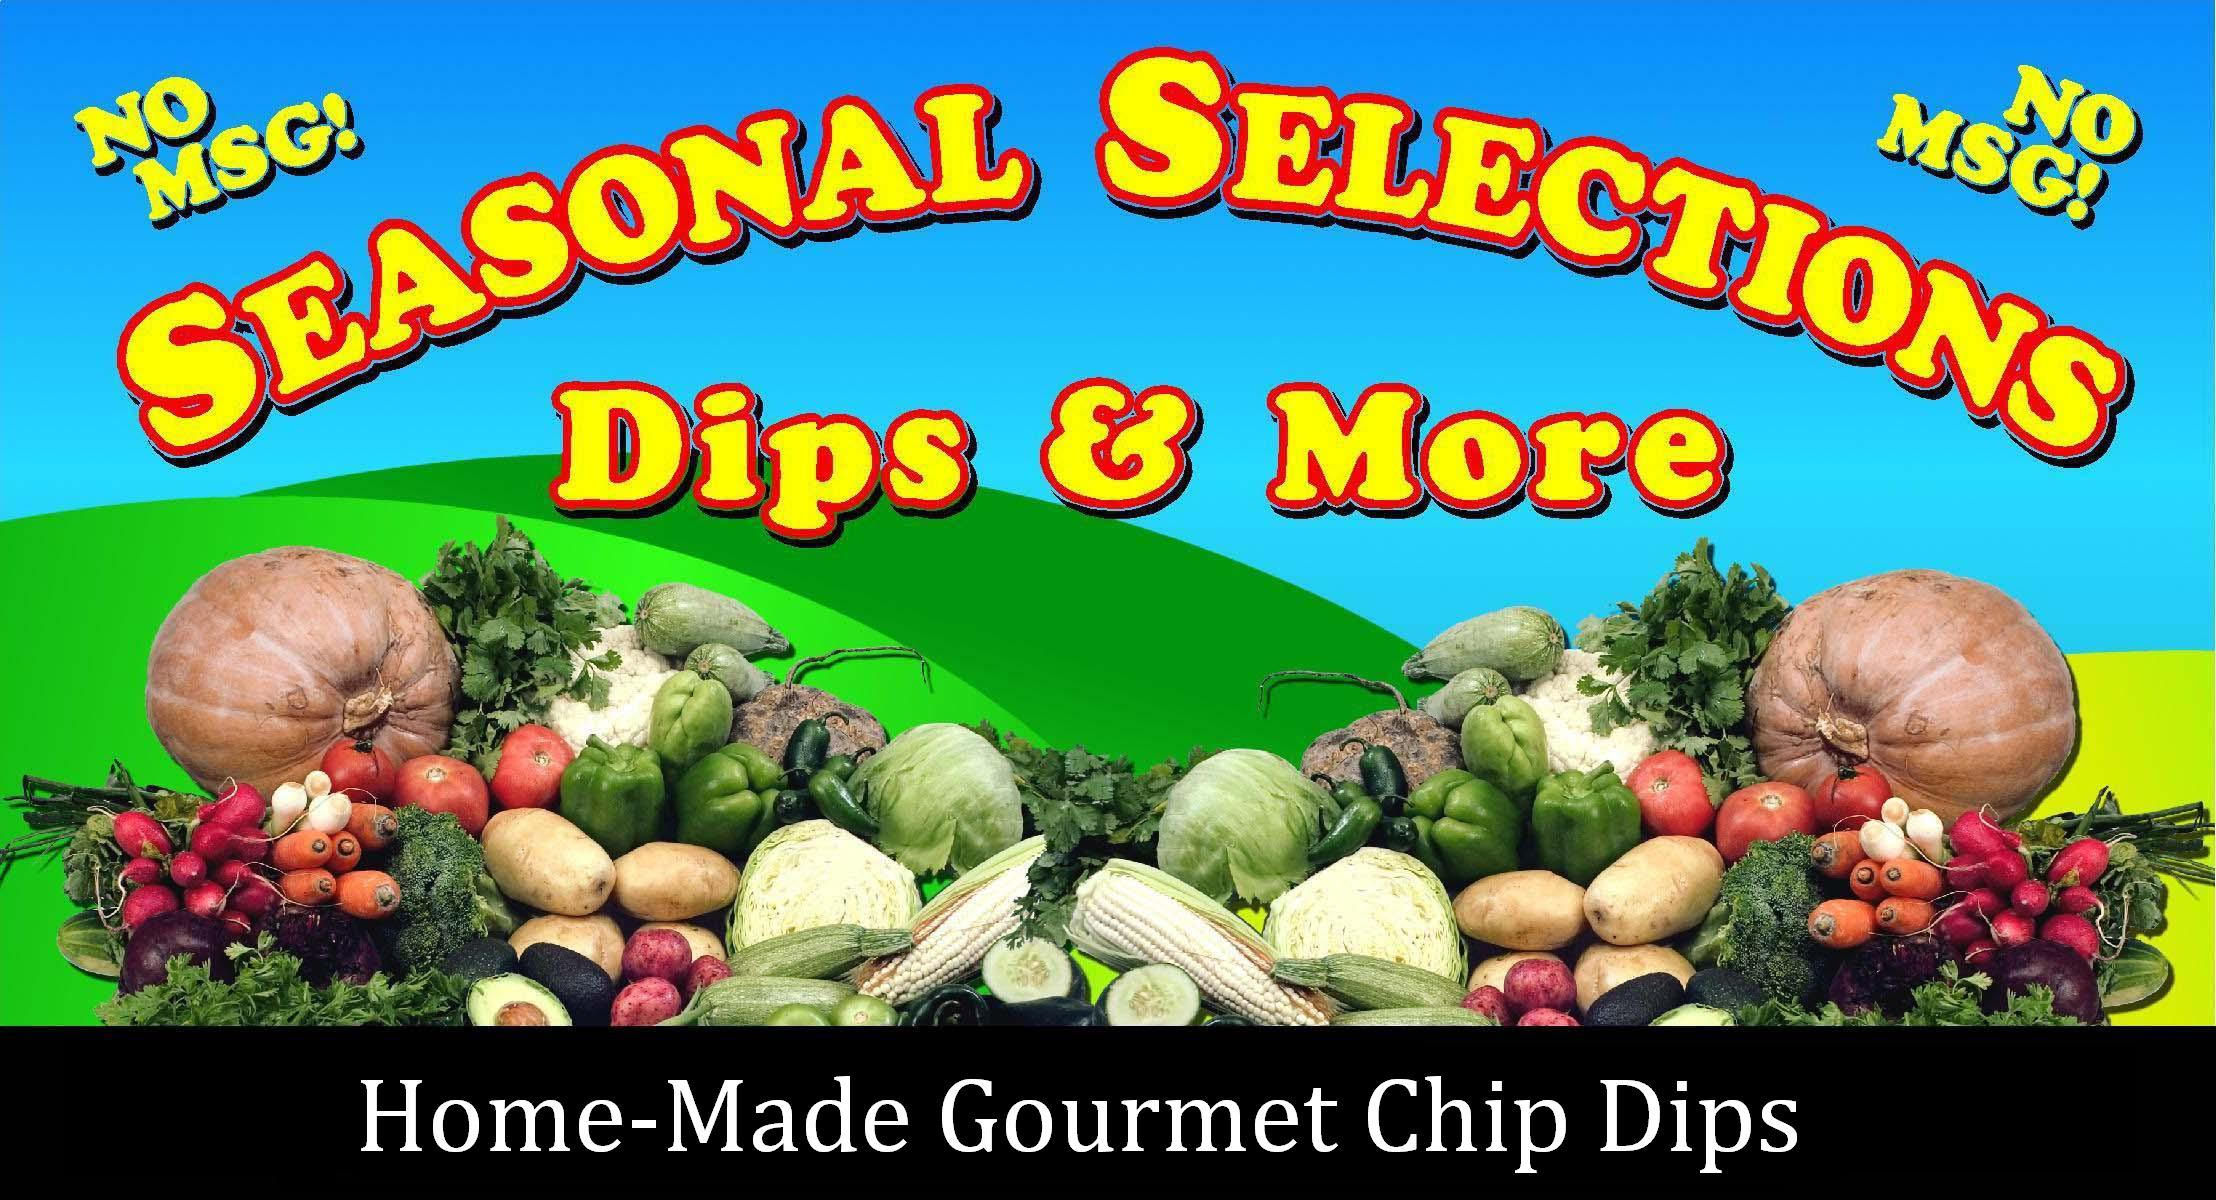 Seasonal Selections Banner.